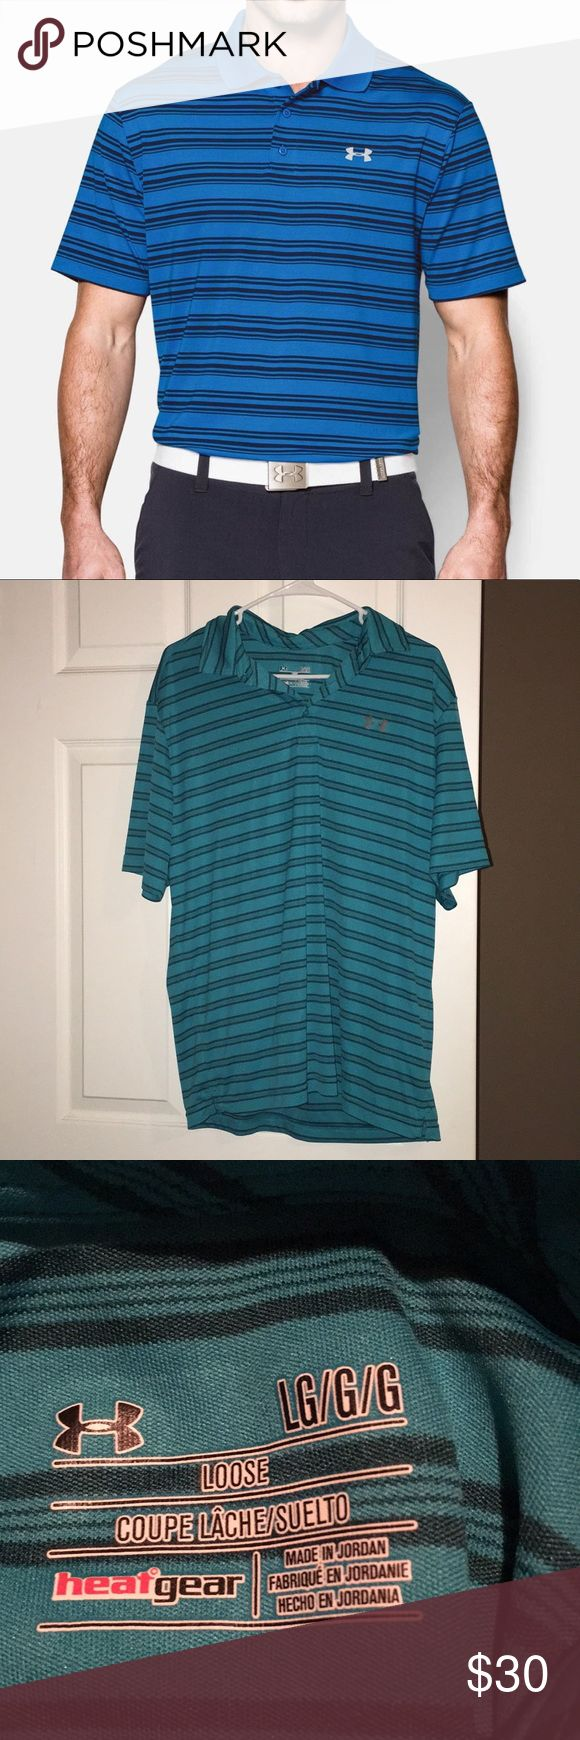 Teal stripped under Armour men's polo First picture for example of the shirt on. Same fitting shirt, just slightly different color. The shirt for sale is a teal color with dark blue stripes. Never been worn Under Armour Shirts Polos